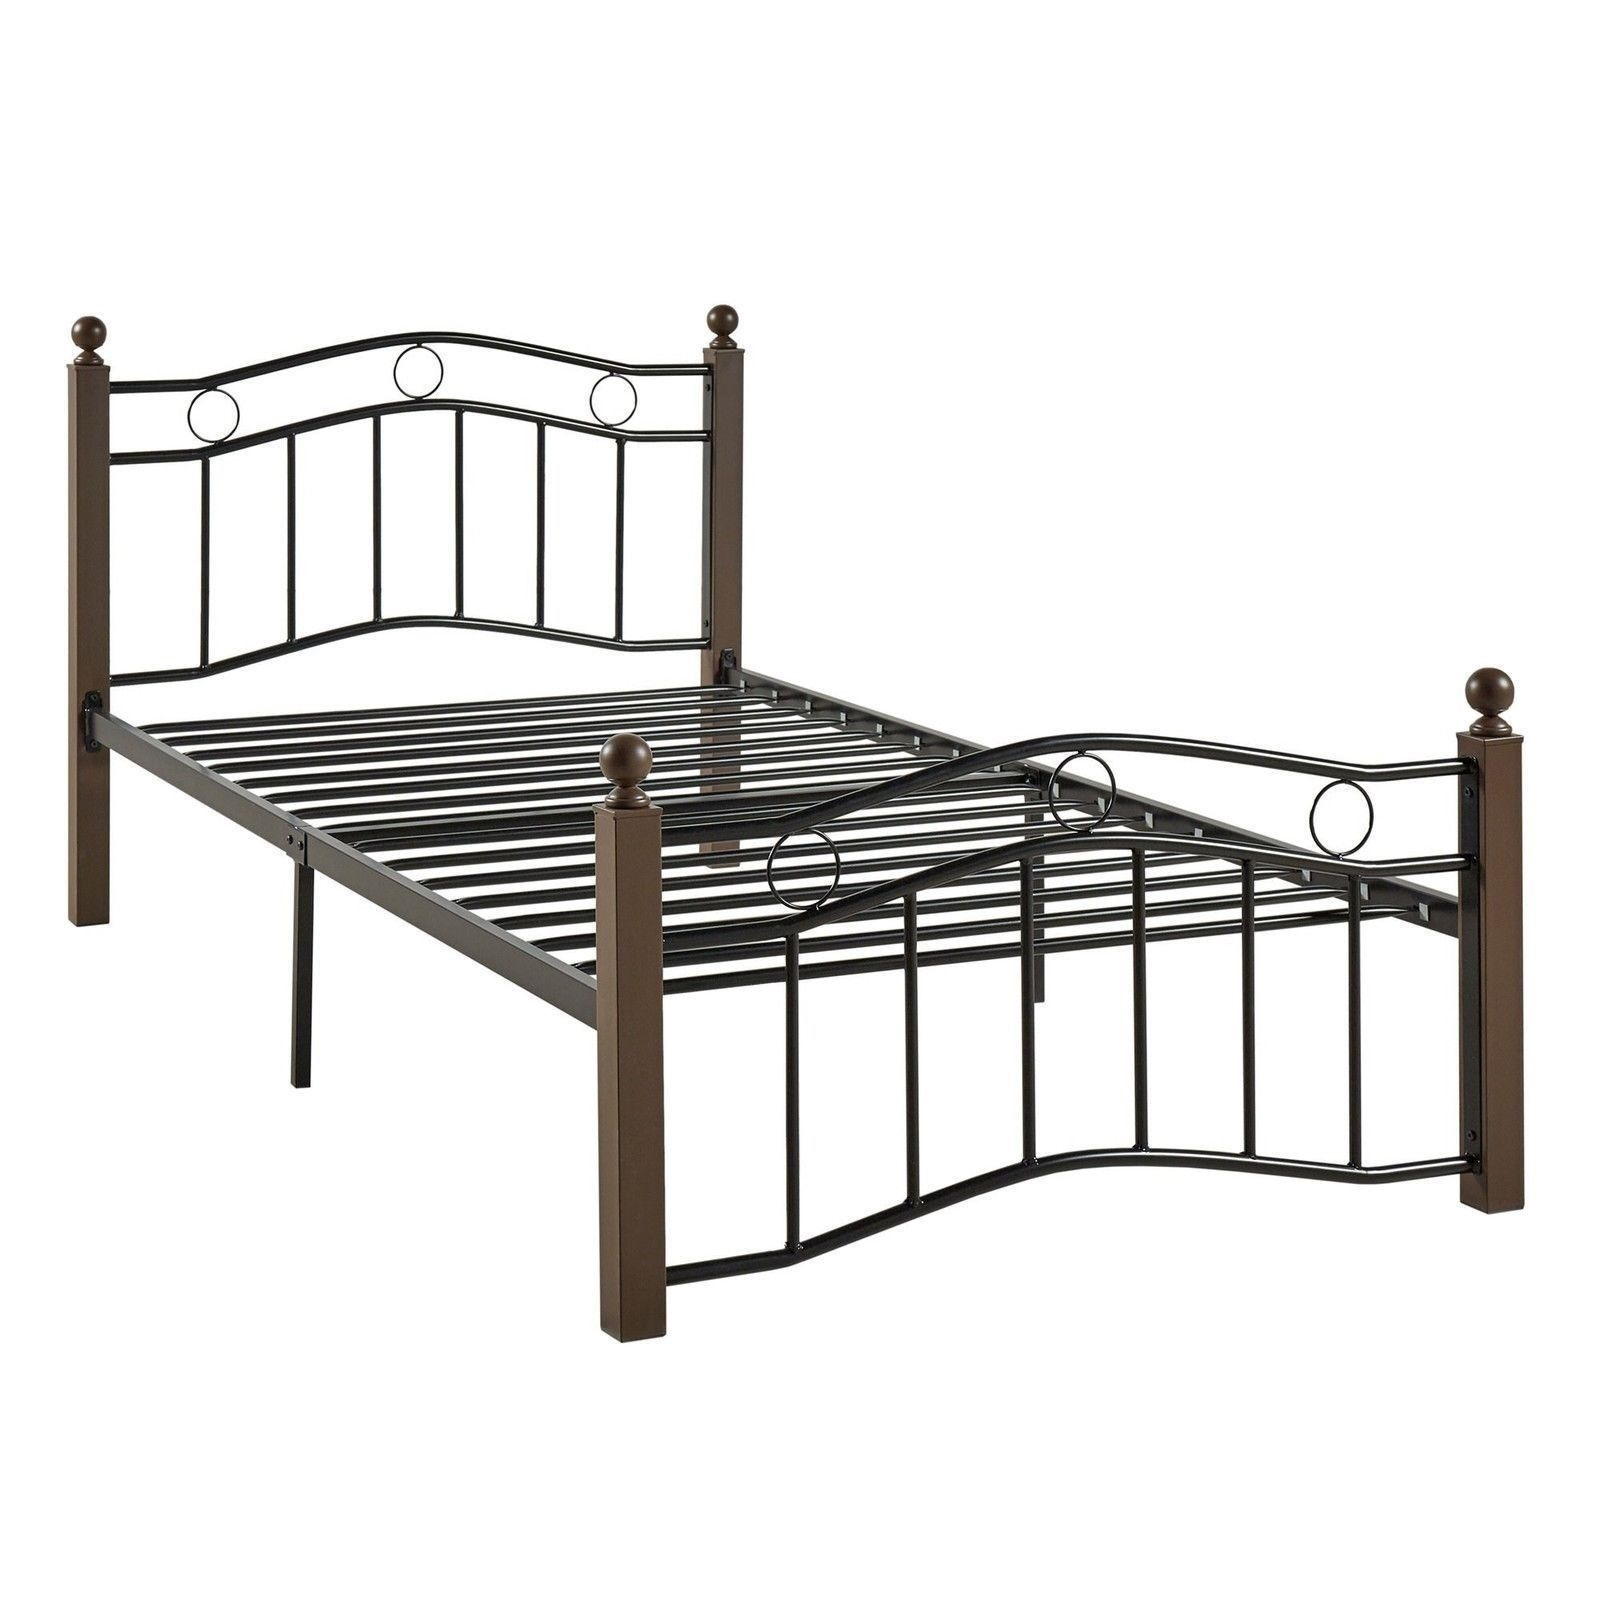 New twin black brown metal mattress foundation bed frame Metal twin bed frame